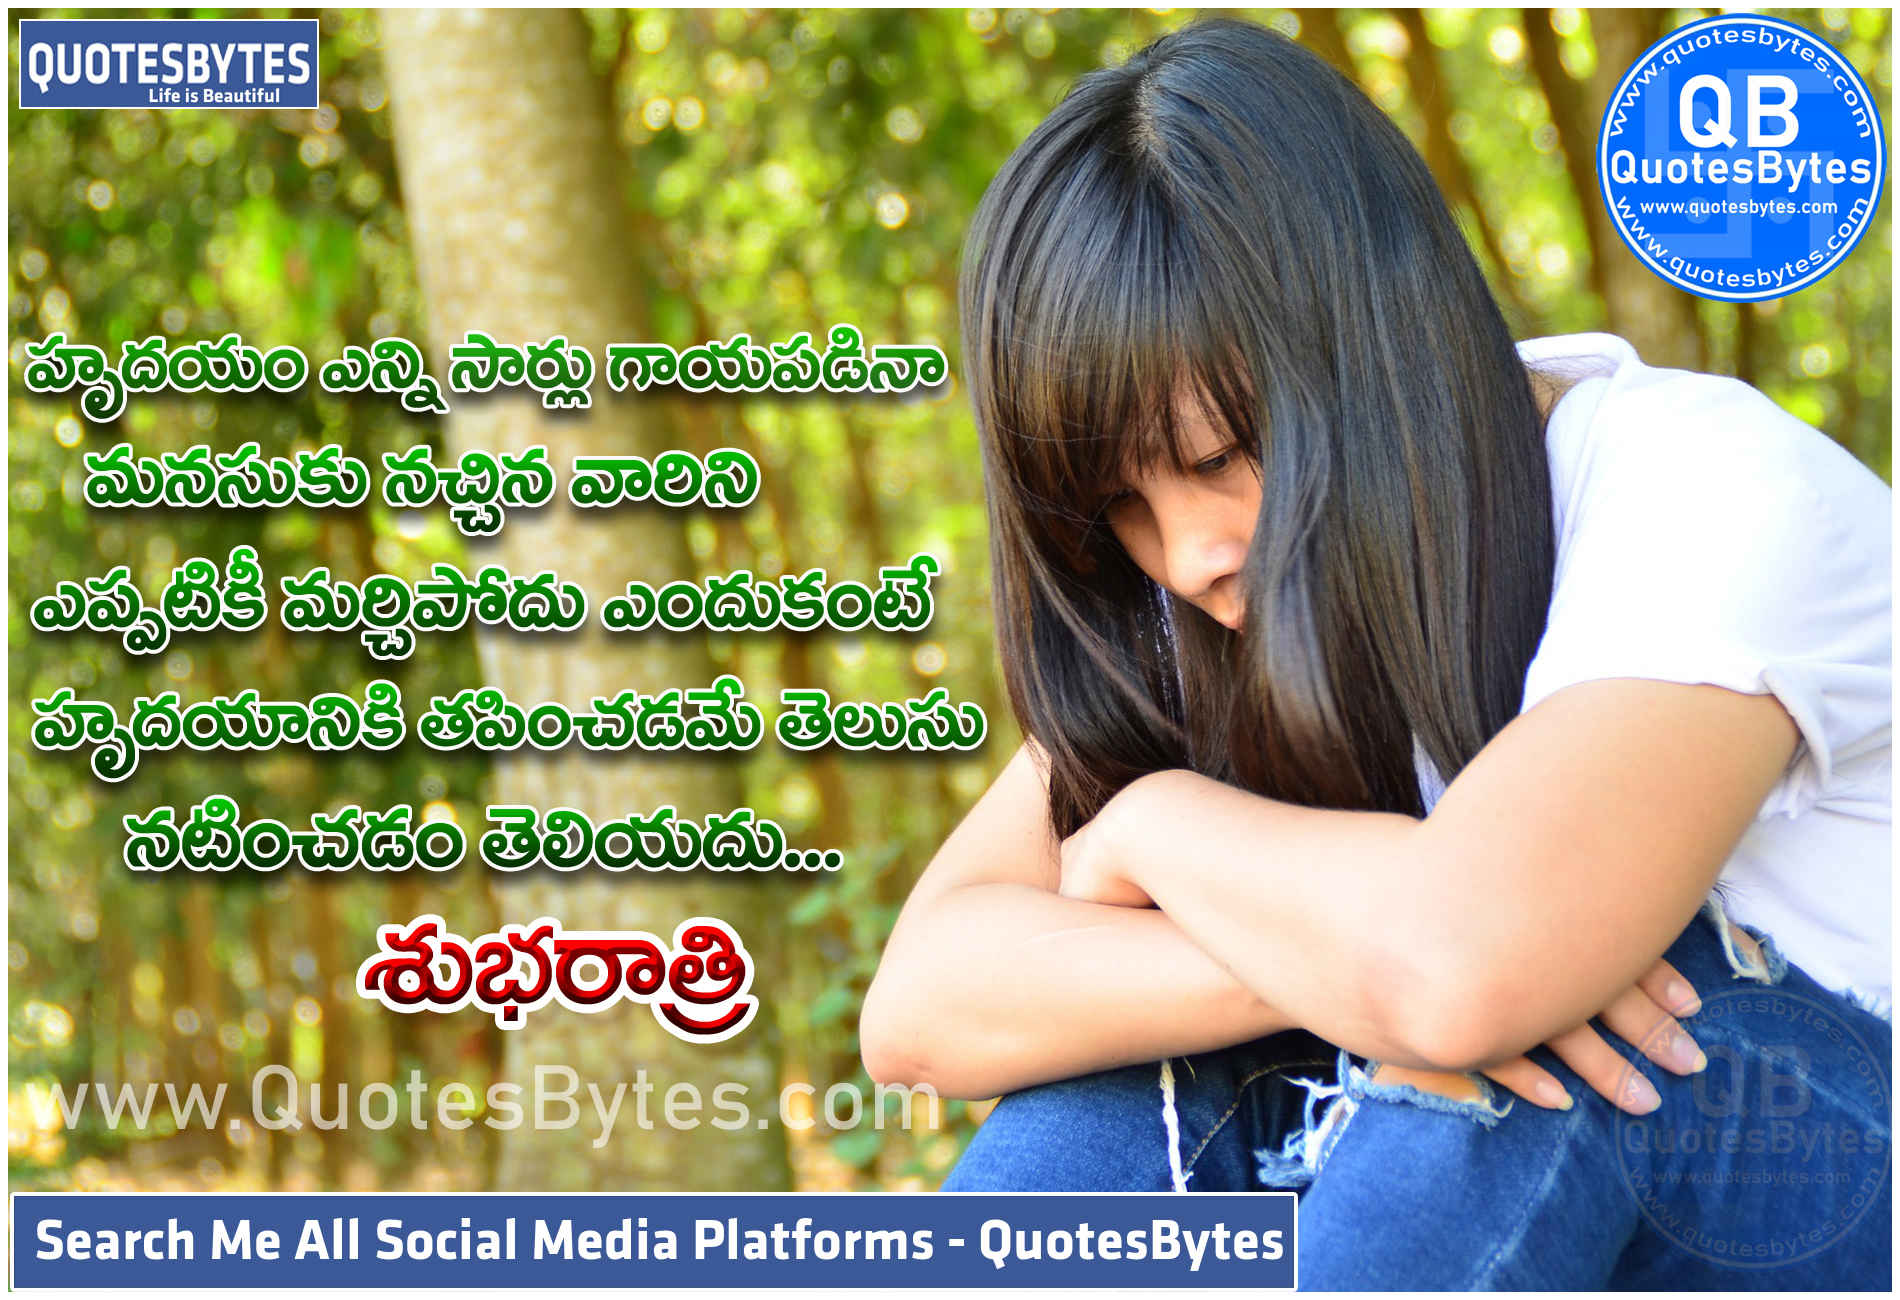 Telugu Good Night Inspirational Quotes- Telugu Messages-Telugu Good Night motivational quotes Good Night Quotes in Telugu BEST GOOD NIGHT QUOTES IN TELUGU – POPULAR TELUGU QUOTES Here are good night quotes in Telugu text, Telugu good night kavithalu, good night quotes to share with friends, Best Telugu Good Night whatsapp dp, good night quotes in Telugu for lovers, good night in the Telugu language, best good night whatsapp dp,Inspirational Good Night Quotes in Telugu, download good night quotes Telugu, telugu good night kavithalu, good night quotes in telugu, good night quotes in Telugu, Telugu good night images, and also good night images in Telugu, status quotes in telugu greetings and wishes, status Quotes, Telugu good night quotes, good night wishes in Telugu, good night messages in Telugu ,Telugu good night SMS and status ,good night quotes, heart touching good night quotes in telugu, wishes in telugu,Best Telugu Quotes and Good Night Quotes,TELUGU QUOTES GOOD NIGHT QUOTES, night wishes, great night wishes.good night quotes, wishes in telugu, Best good night pics, quotes, Telugu Good Night Quotes for Facebook whatsapp dp,status,Facebook good Night Quotes with Images, images and sayings, NEW HD wallpapers best images, Good night Telugu NEW cute and awesome images and wallpapers in HD Good night Telugu, Telugu WhatsApp, Best And Top Good Night In Telugu, Images, Quotes, Messages, Wishes. If you Are searching for good night quotes in Telugu, Telugu good night images, and also good night images in Telugu, Telugu good night quotes, good night wishes in Telugu, good night messages in Telugu and Telugu good night sms and status,Good Night Quotes in Telugu,Telugu Good Night Quotes for Whatsapp Status, Telugu Good Night Messages for whatsapp dp,status,Telugu Good Night Quotes for Whatsapp Status,Top Good Night Quotes in Telugu,TELUGU GOOD NIGHT QUOTES FOR WHATSAPP STATUS,Telugu Good Night Quotes for Whatsapp Status,Telugu Good Night Quotes for Whatsapp Status,Best Good